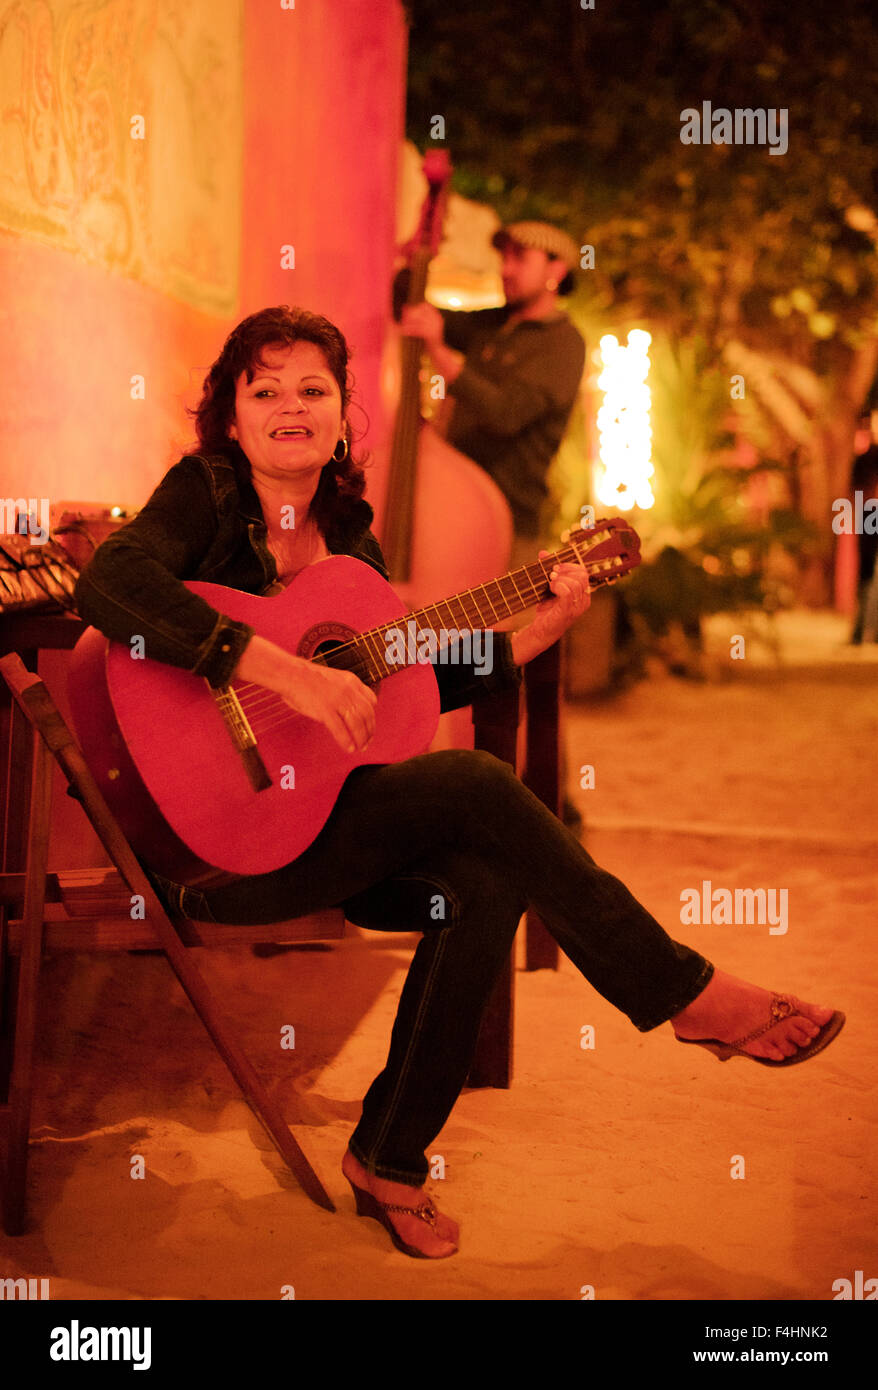 Gladys del Monte and man on bass perform. Isla Mujeres,Mexico. - Stock Image